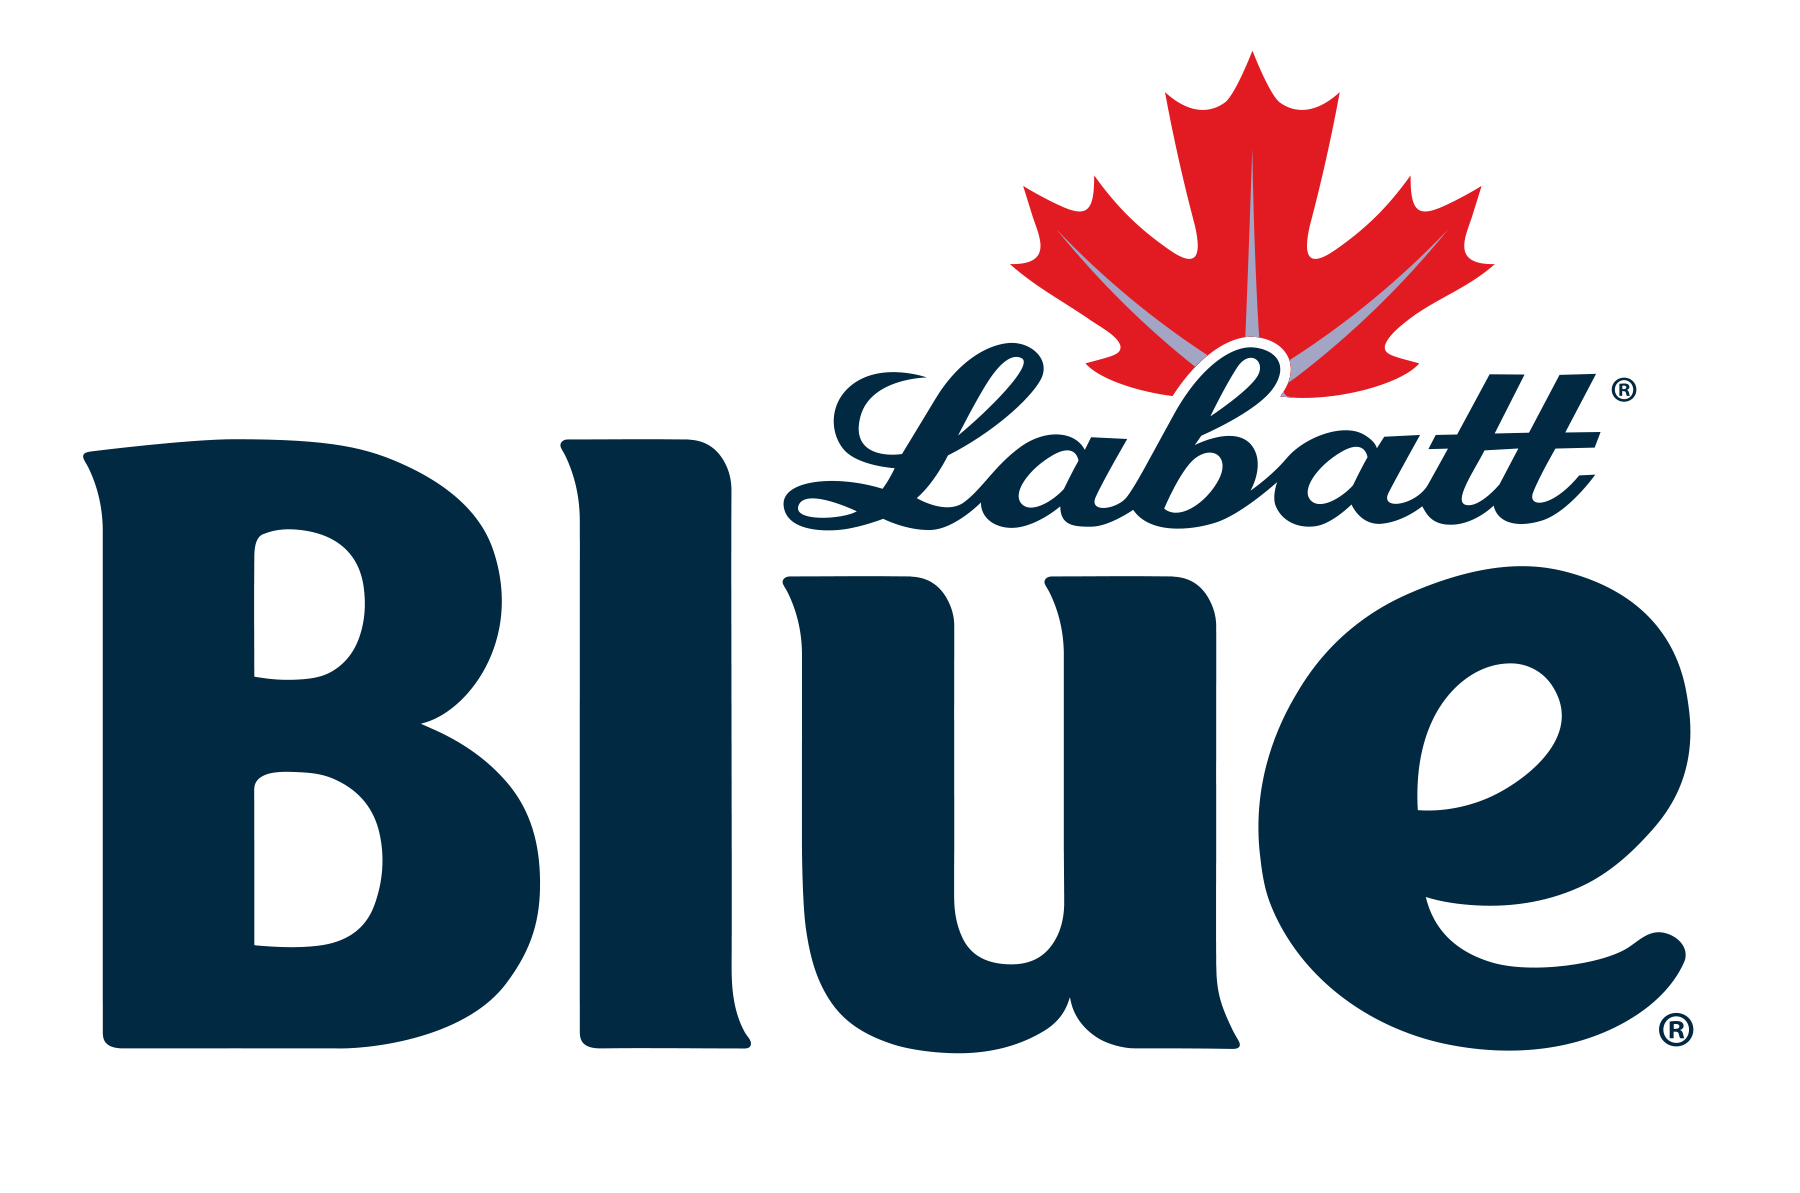 labatt_redesign_blue_transparent.png